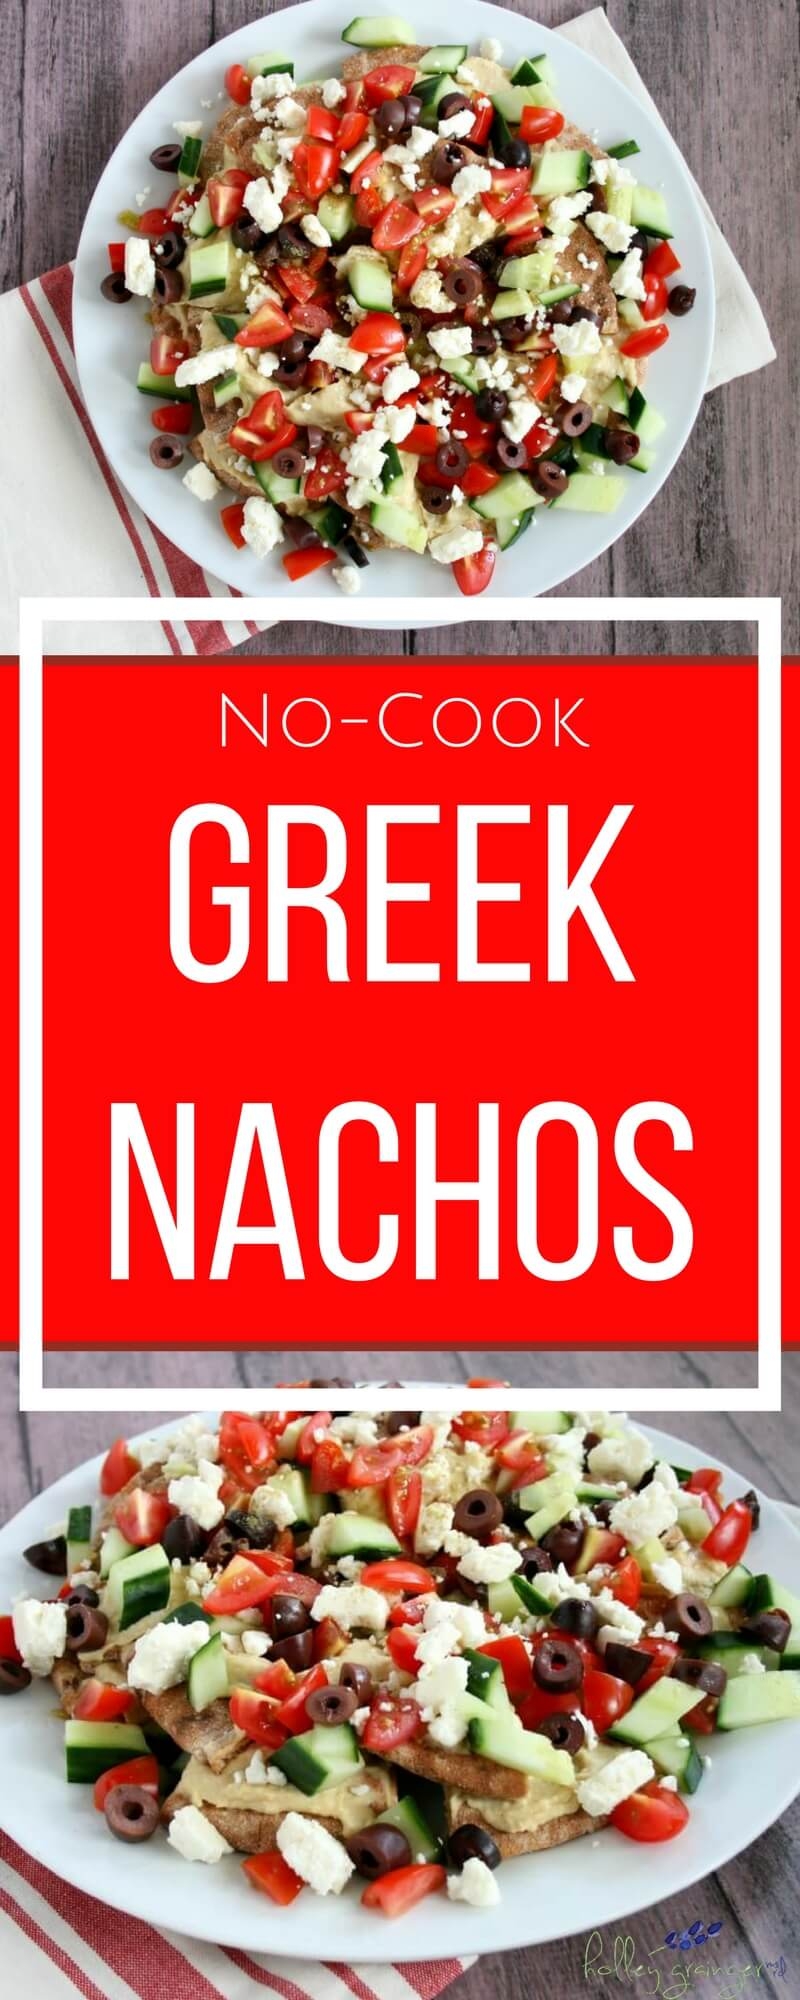 Add little Mediterranean flare to your weekly menu with No-Cook Greek Nachos. This simple vegetarian recipe is perfect for a hearty appetizer, filling lunch, or light dinner.